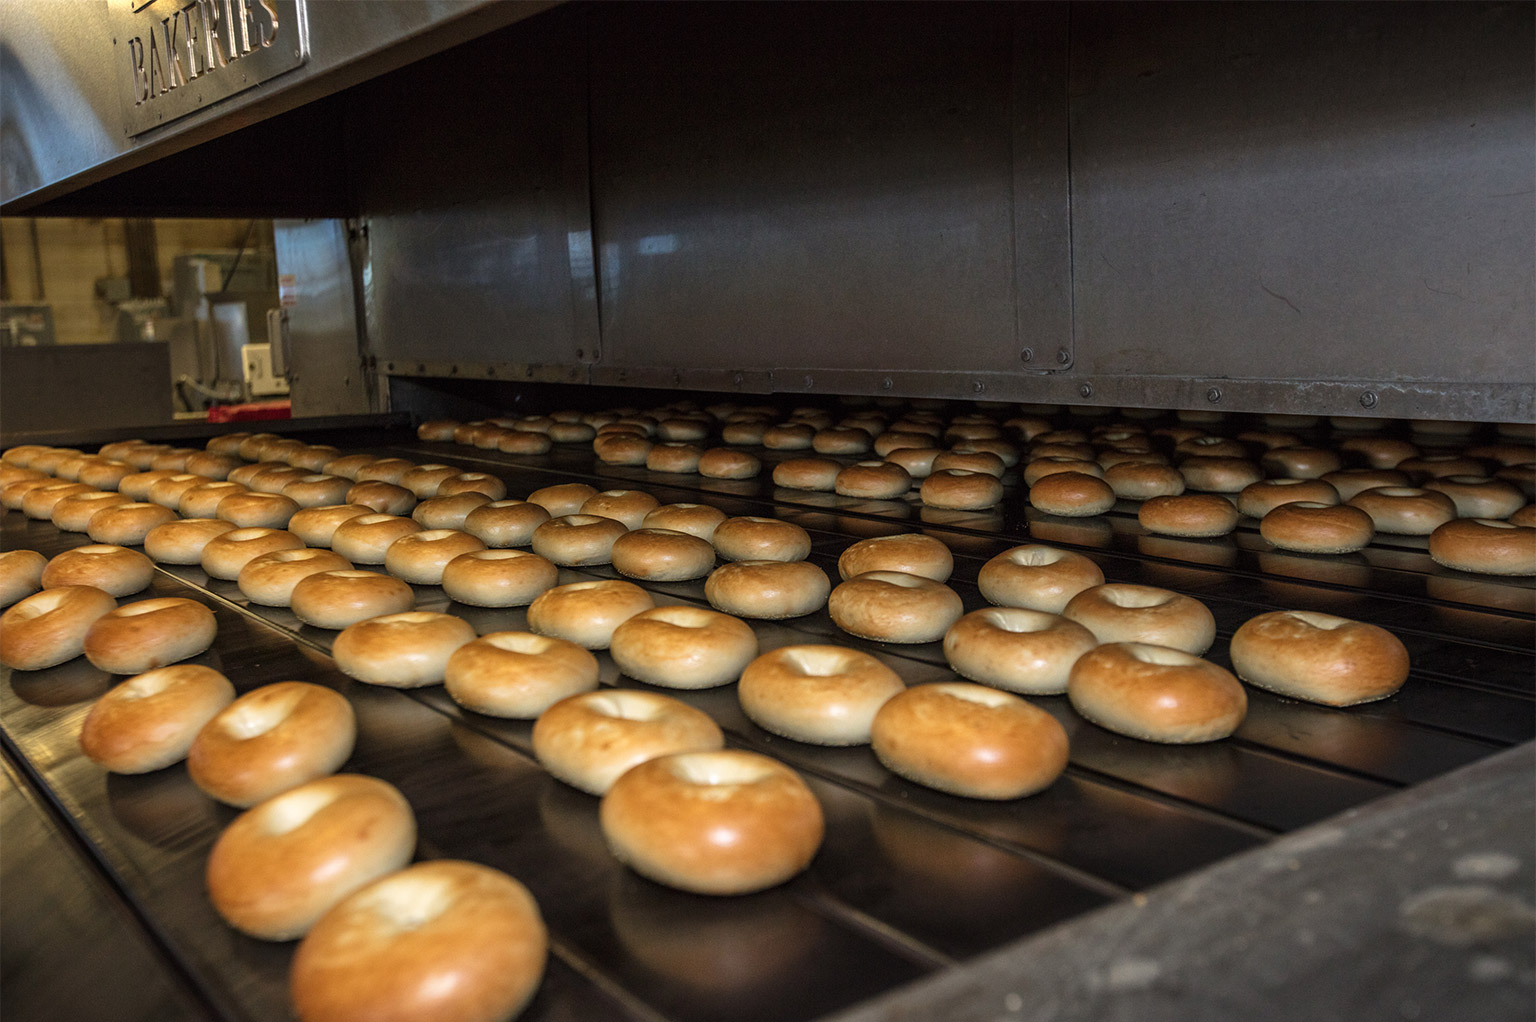 Bagels coming out of an oven